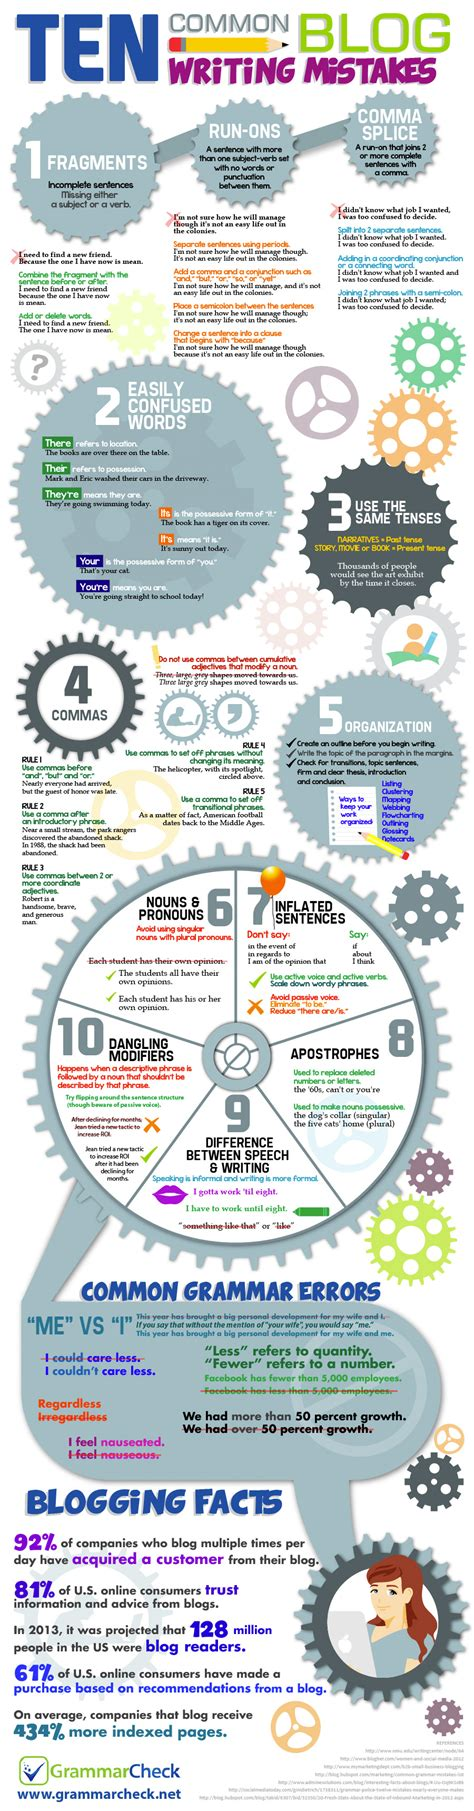 newspaper layout mistakes infographic 10 common writing mistakes and how you are